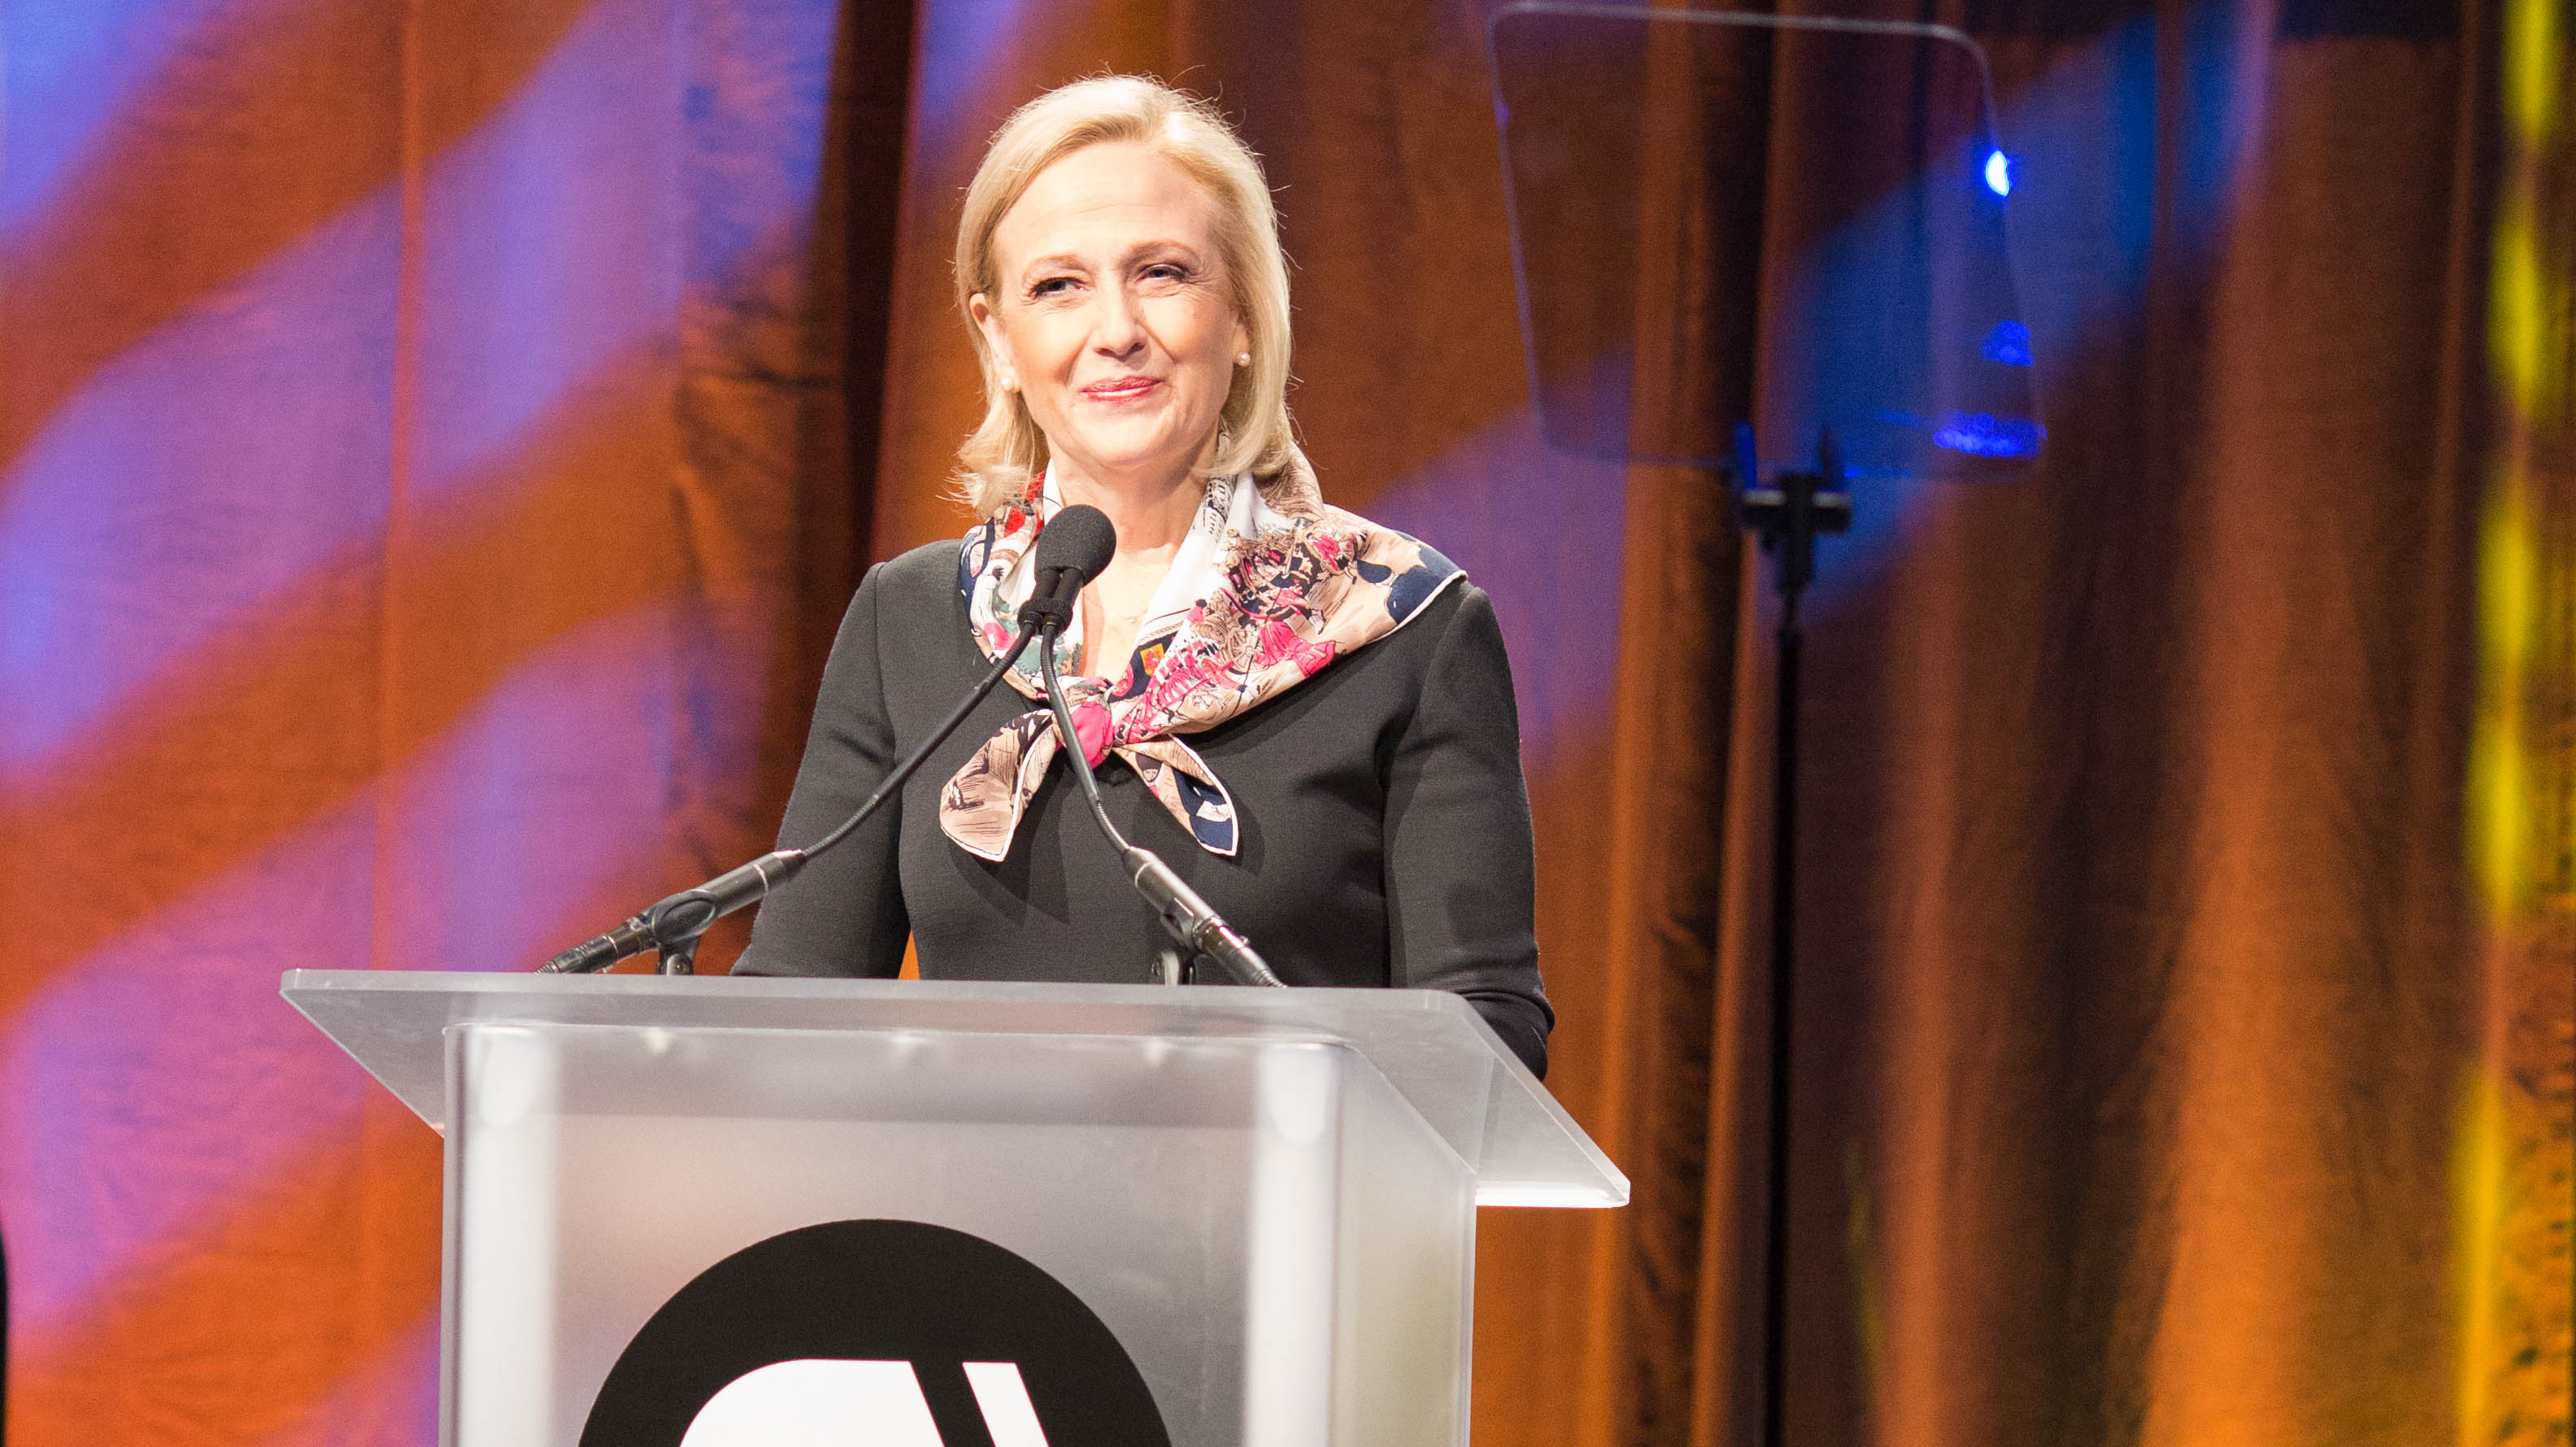 Paula Kerger, 2017 PBS Annual Meeting